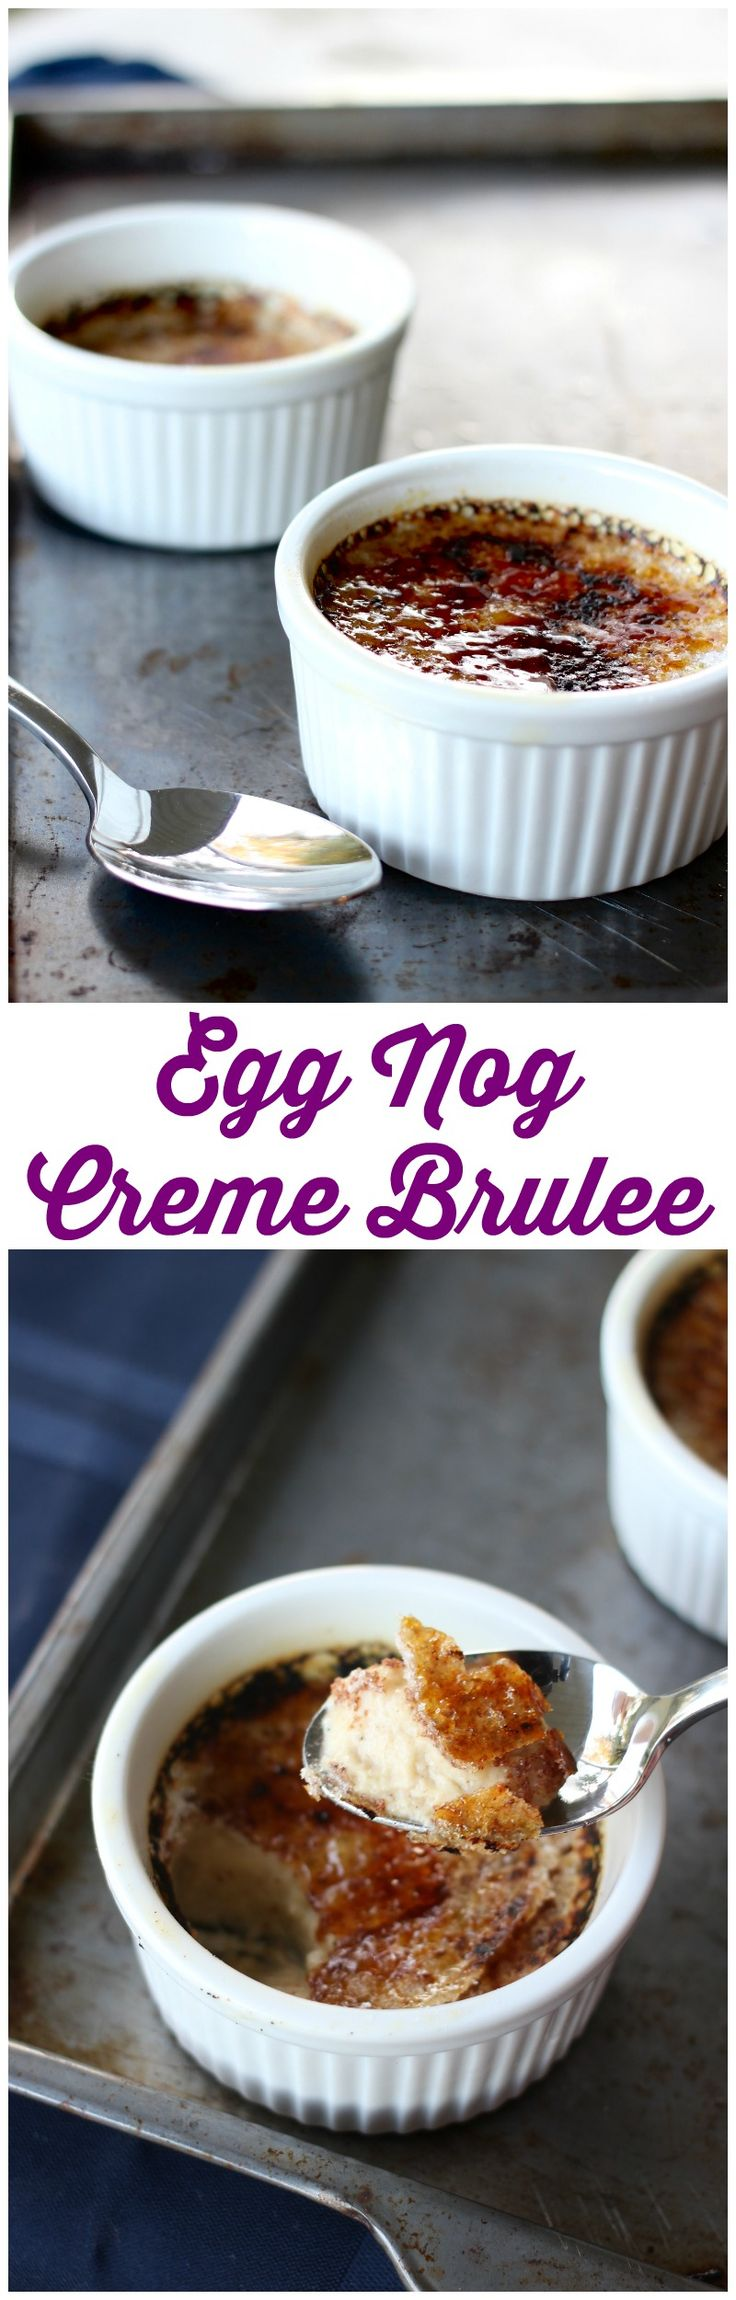 This Creme Brulee is a very simple dessert that will wow your friends and family with a creamy egg nog flavor, perfect for the holidays. #dessert #recipe